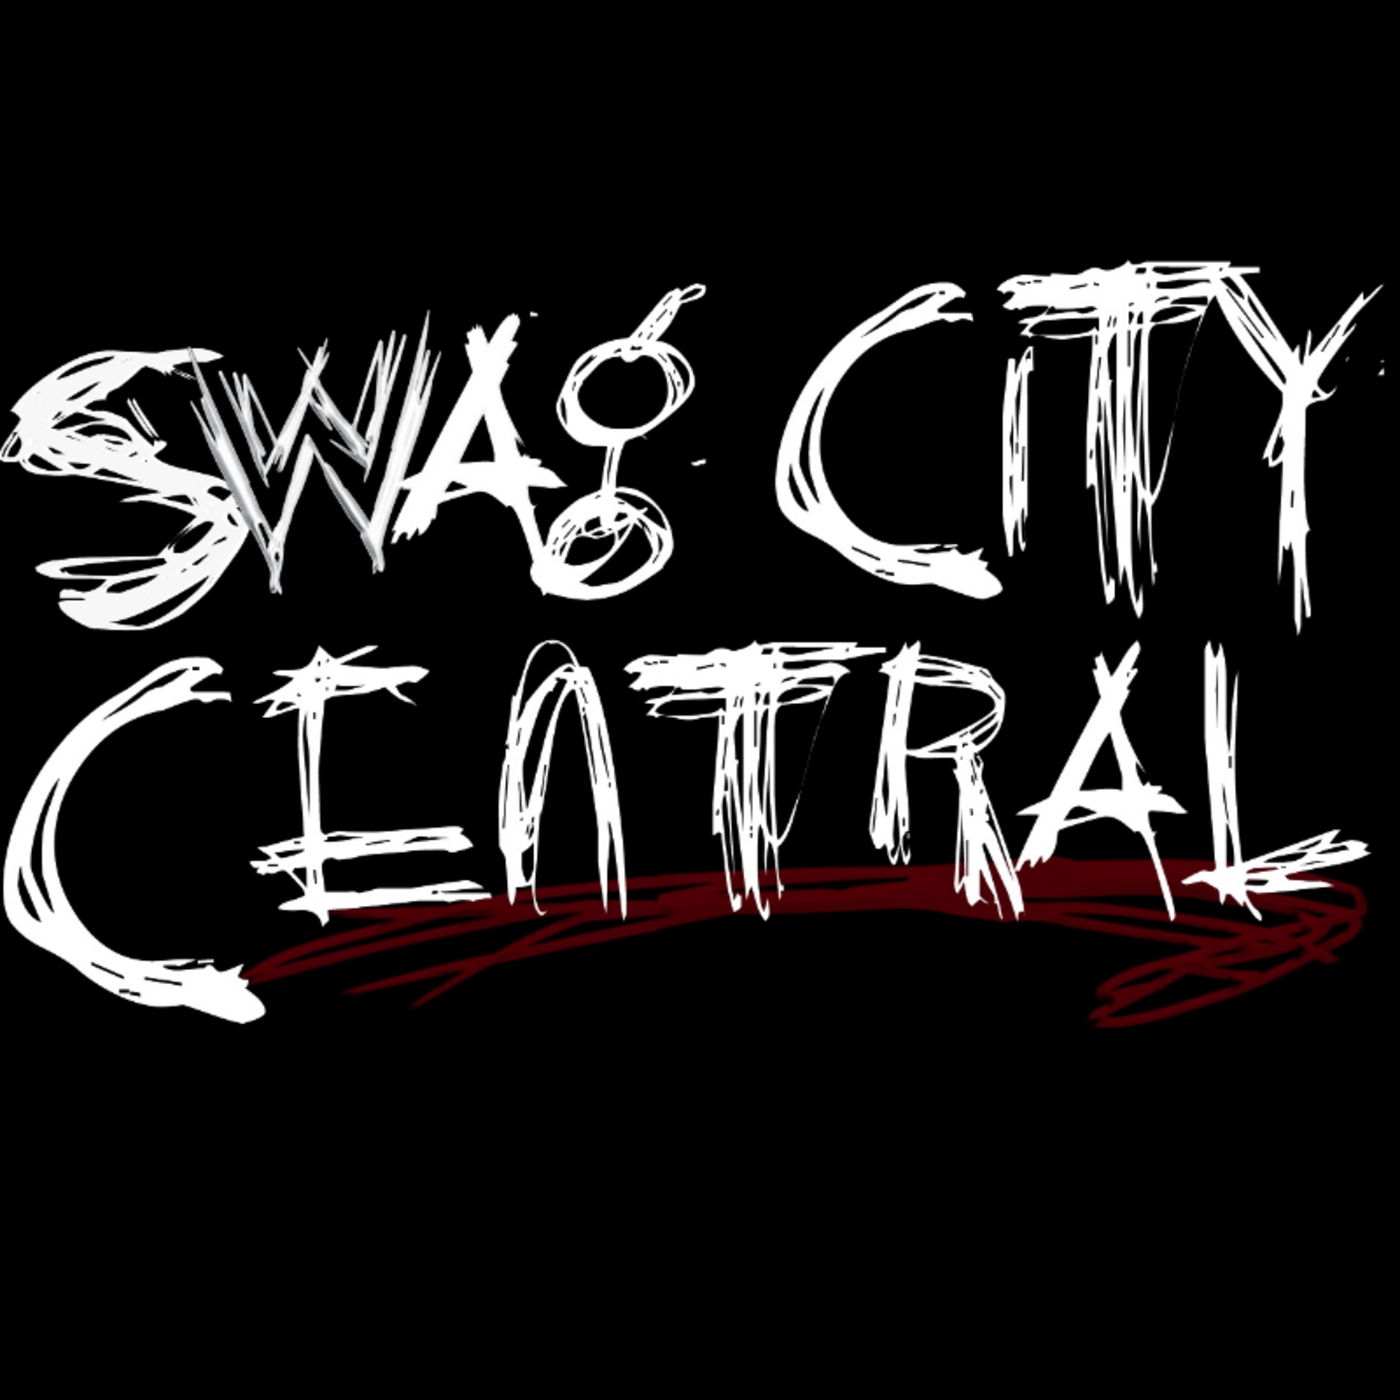 Swag City Central